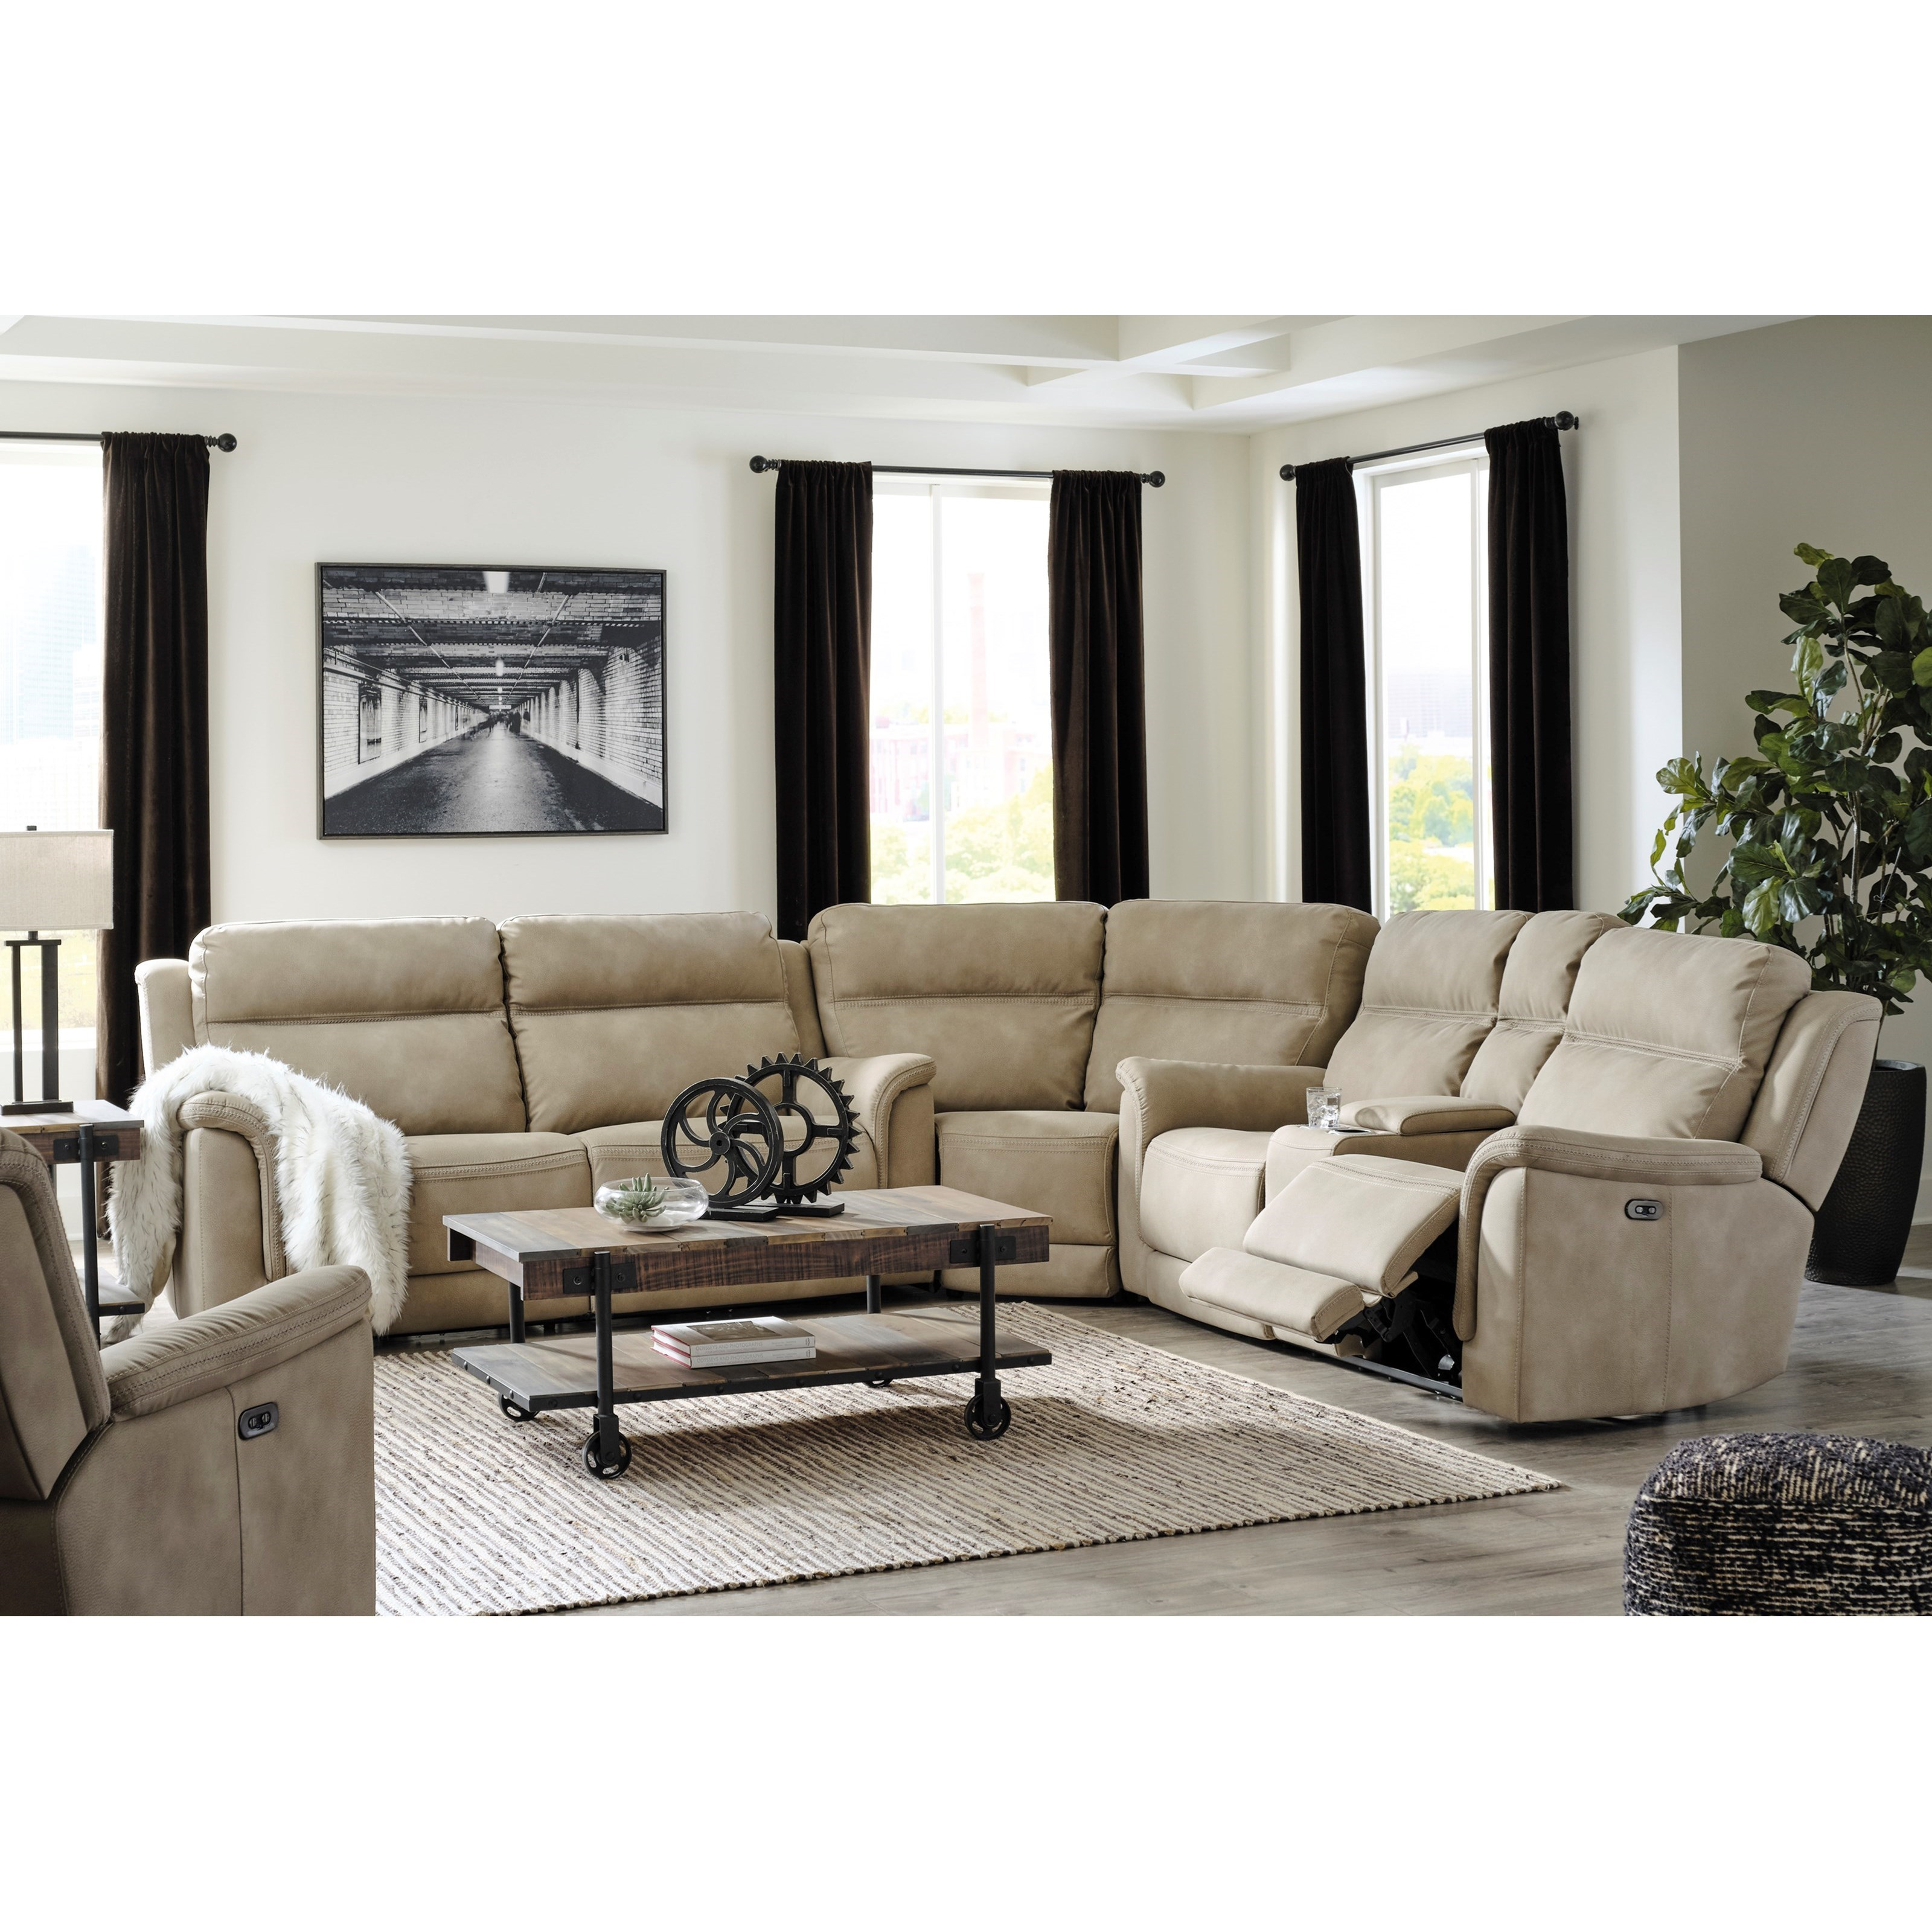 Next-Gen DuraPella Power Reclining Living Room Group by Signature Design by Ashley at Zak's Home Outlet